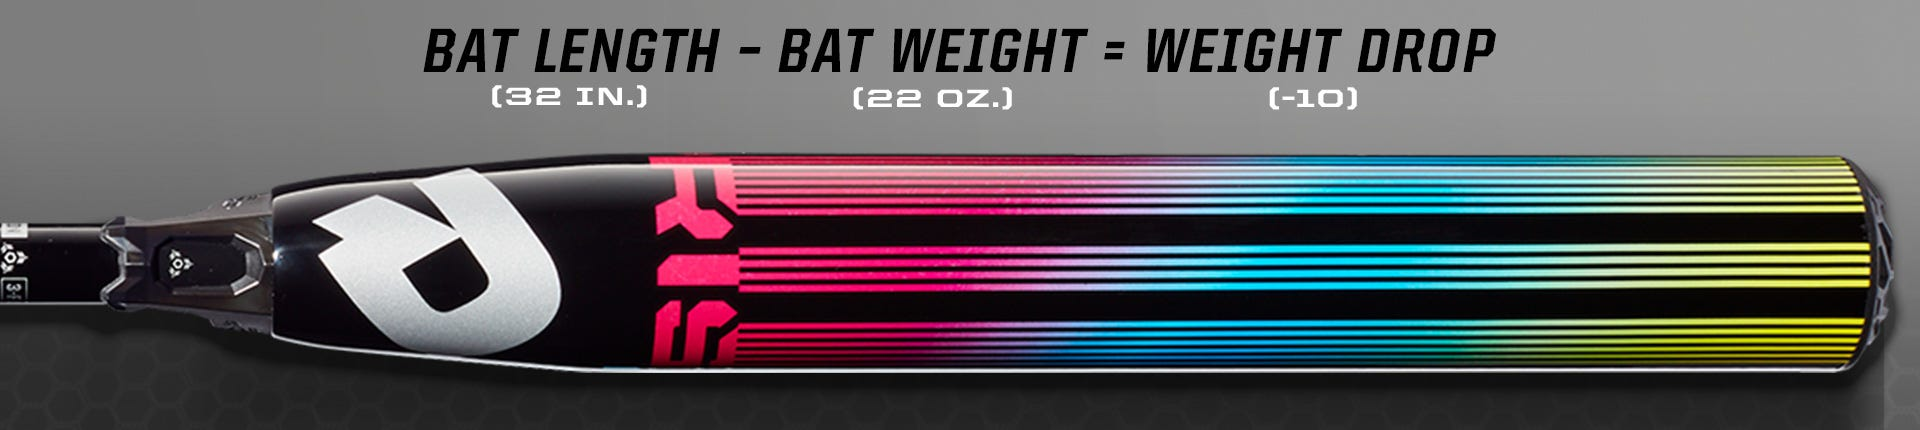 Younger Players Often Use A Lighter Bat Larger Weight Drop And As They Increase Their Skill Level Progress To Heavier Smaller